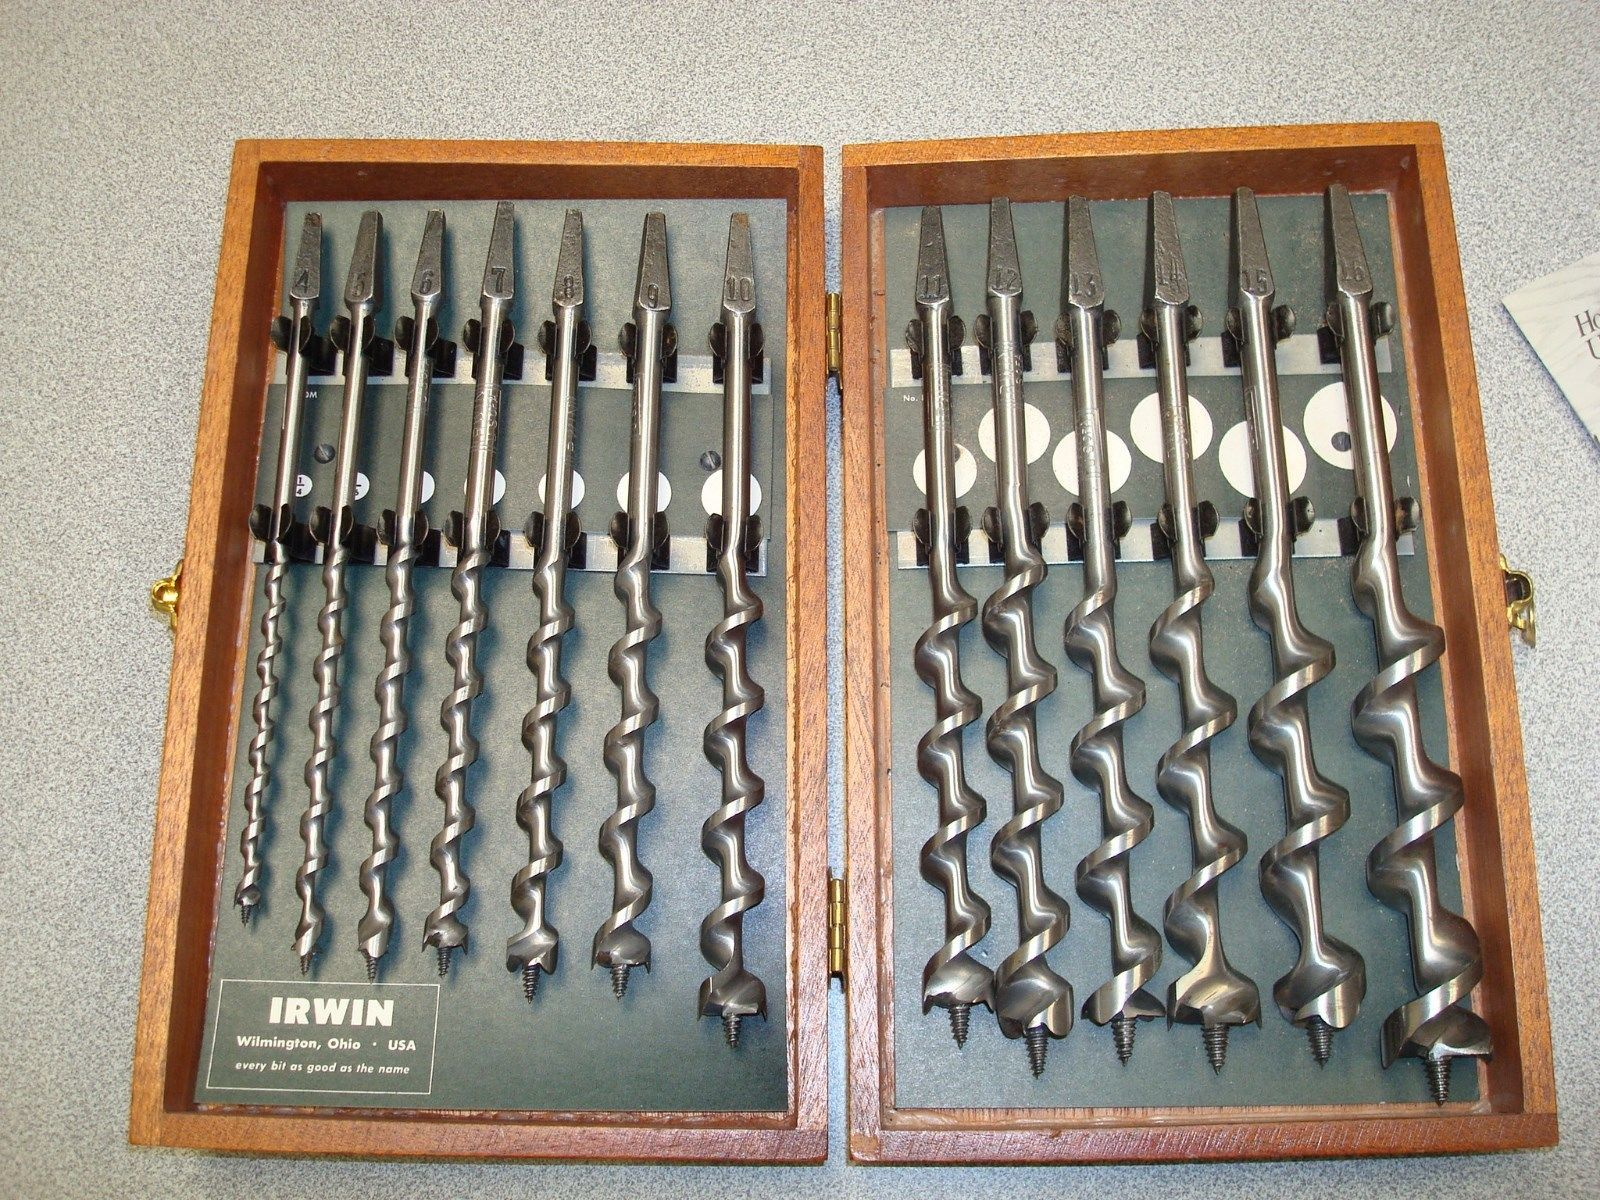 Vintage 13 Piece Irwin Auger Drill Bit Set In Wood Box Wood Boxes Drill Bits Essential Woodworking Tools